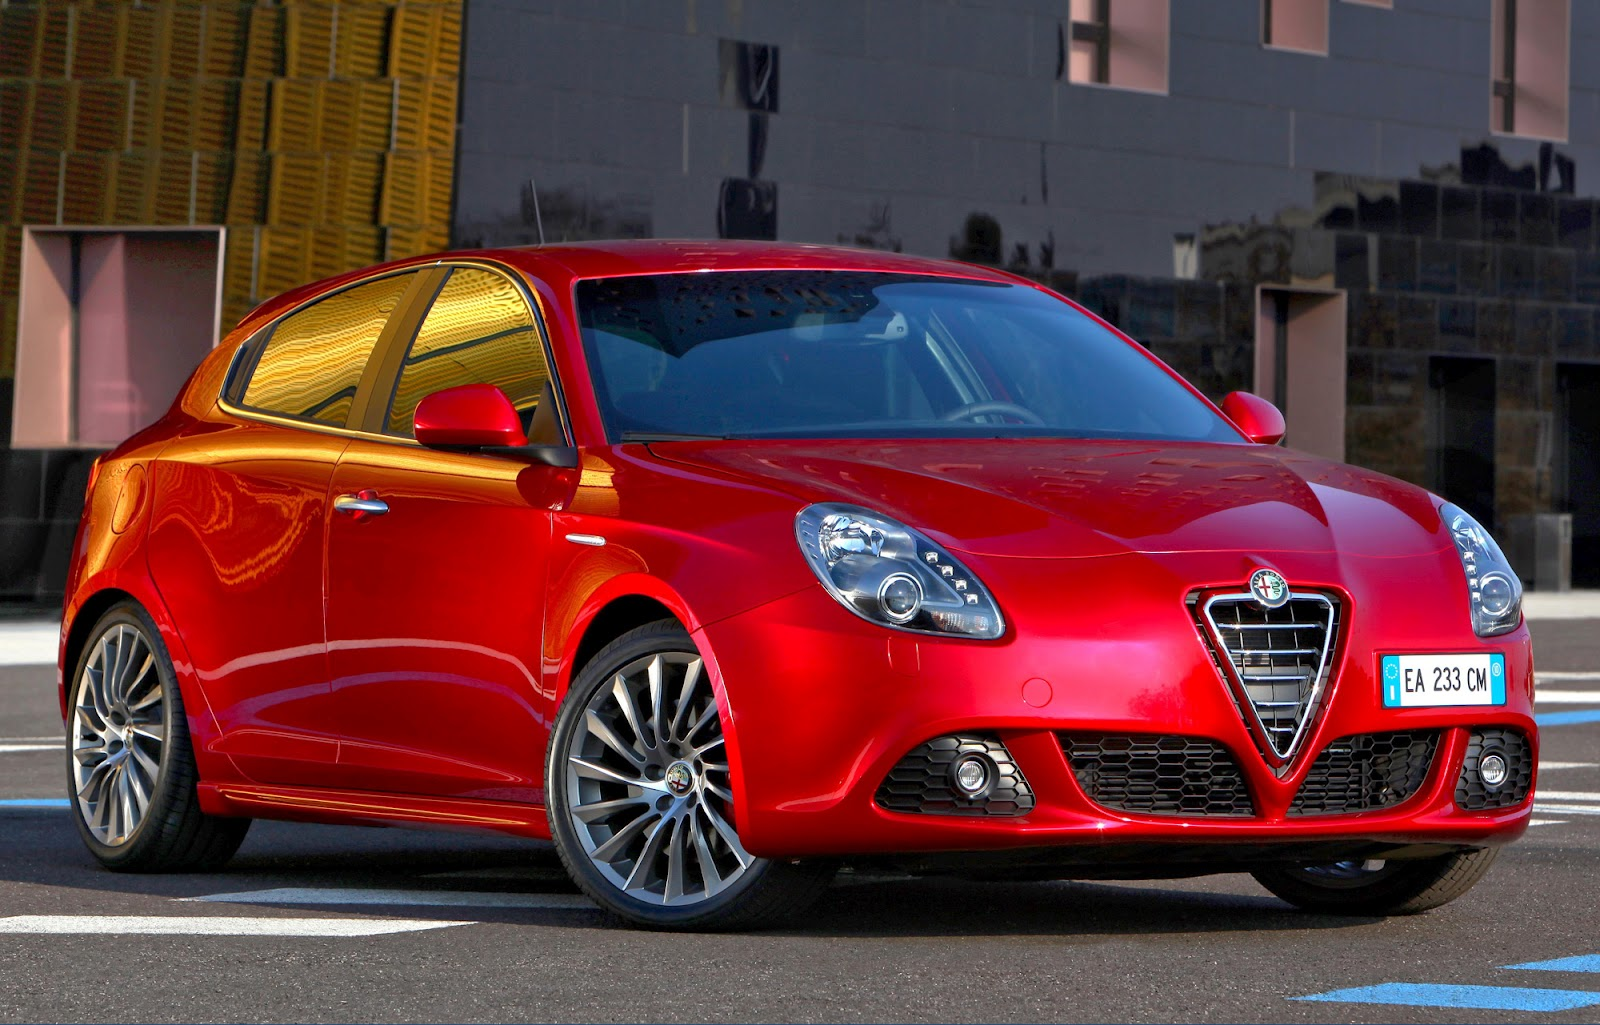 2012 alfa romeo giulietta pictures newsautomagz. Black Bedroom Furniture Sets. Home Design Ideas